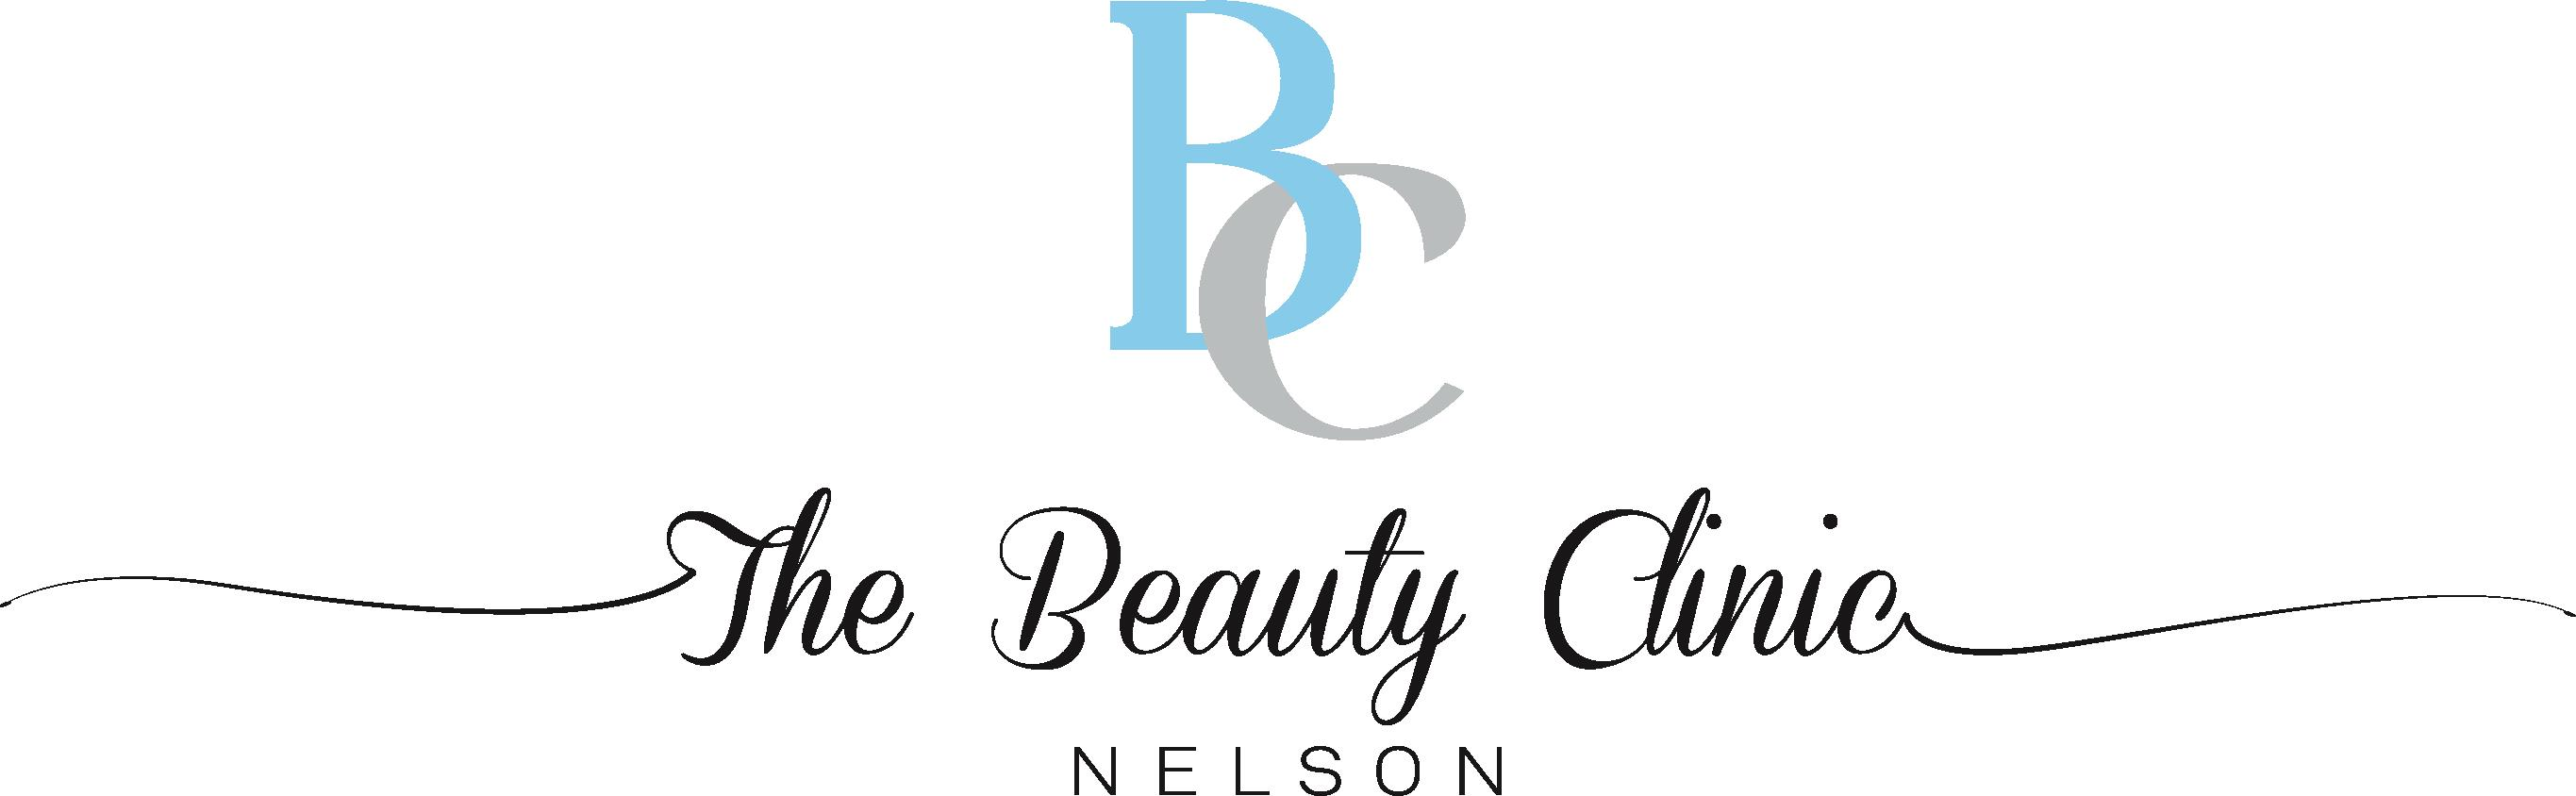 The Beauty Clinic Nelson